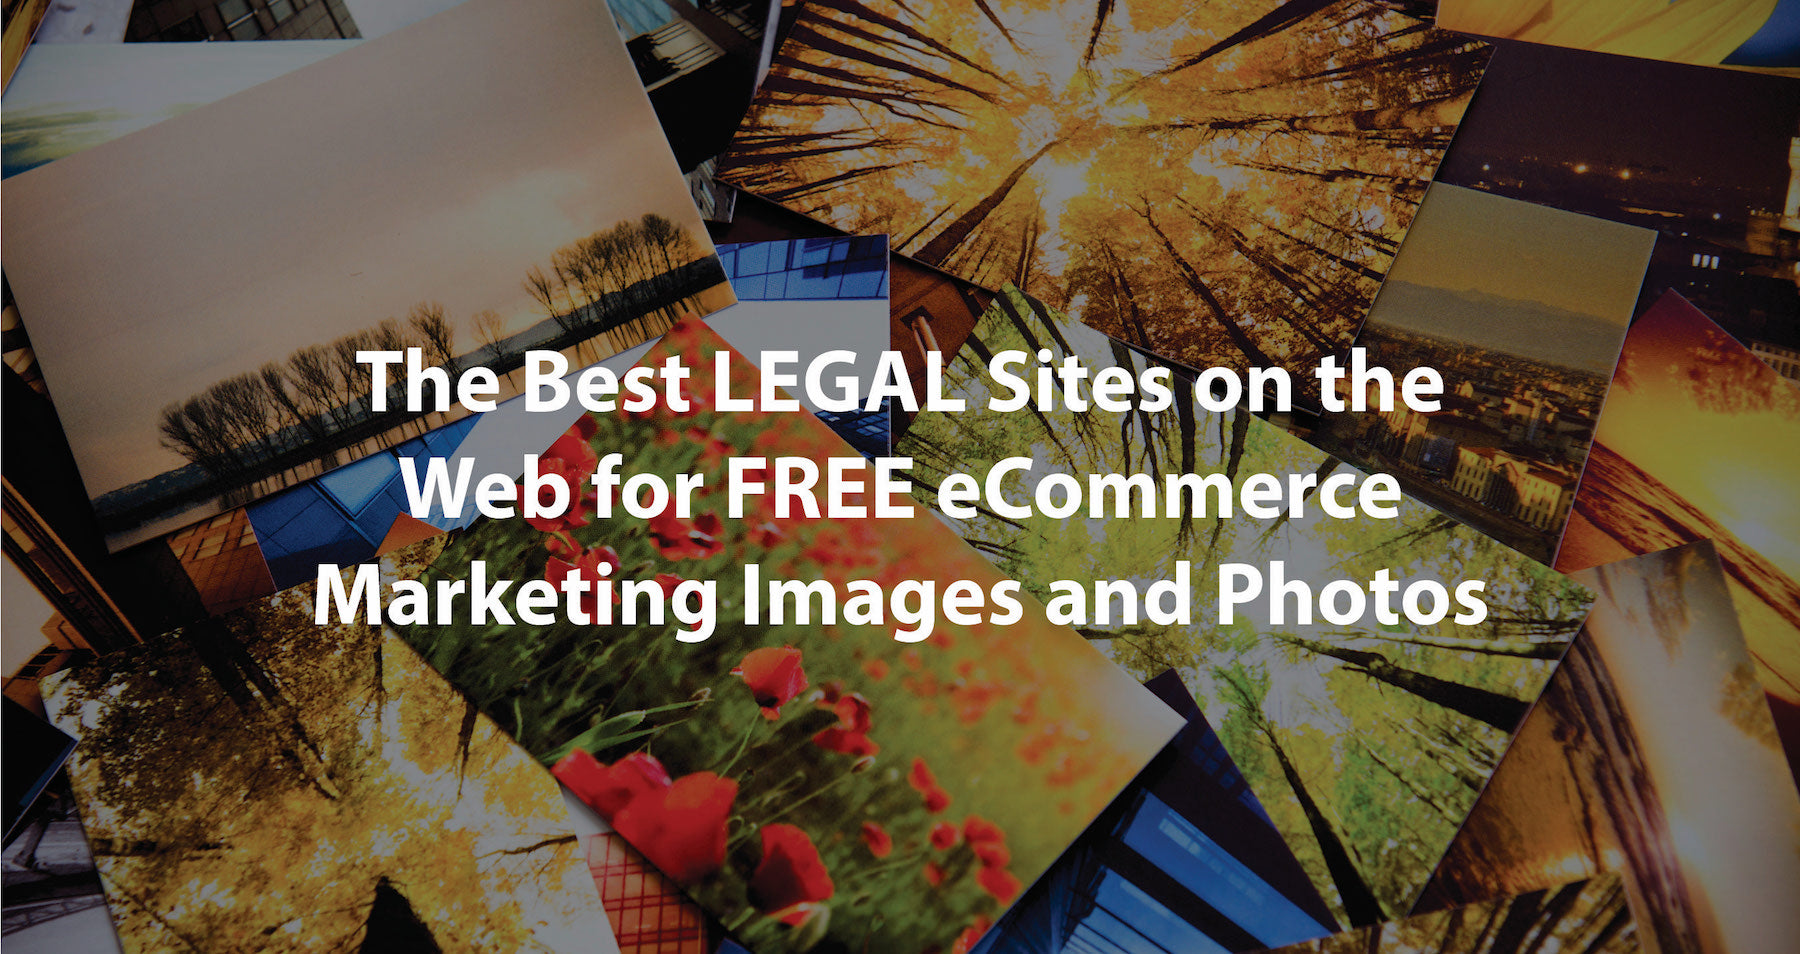 The Best LEGAL Sites on the Web for FREE eCommerce Marketing Images and Photos